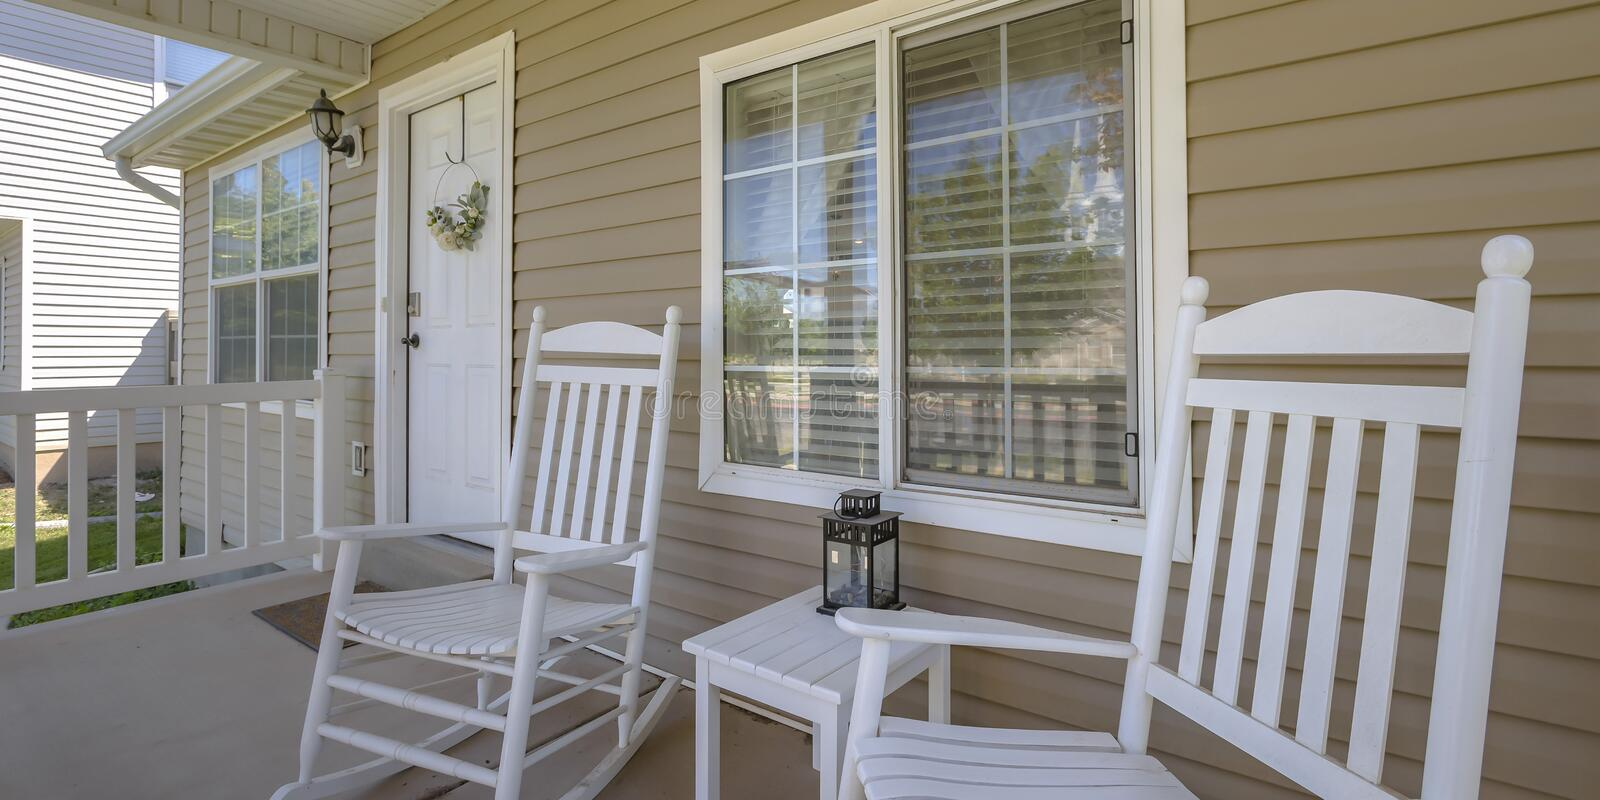 Home with rocking chairs and table on front porch royalty free stock photo